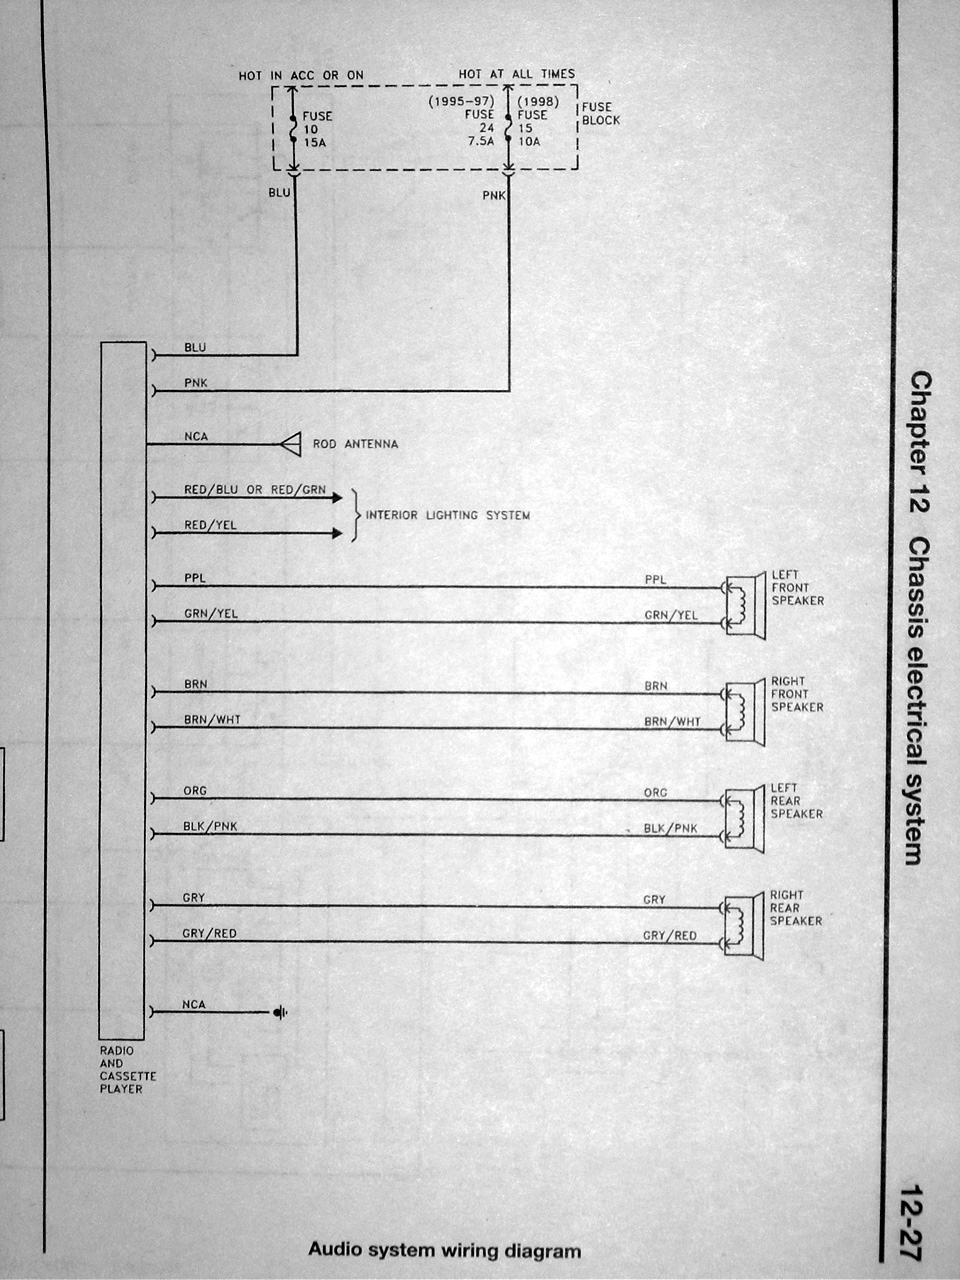 nissan a33 schematics diagram wiring diagram ac schematic diagram nissan a33 schematics diagram #8